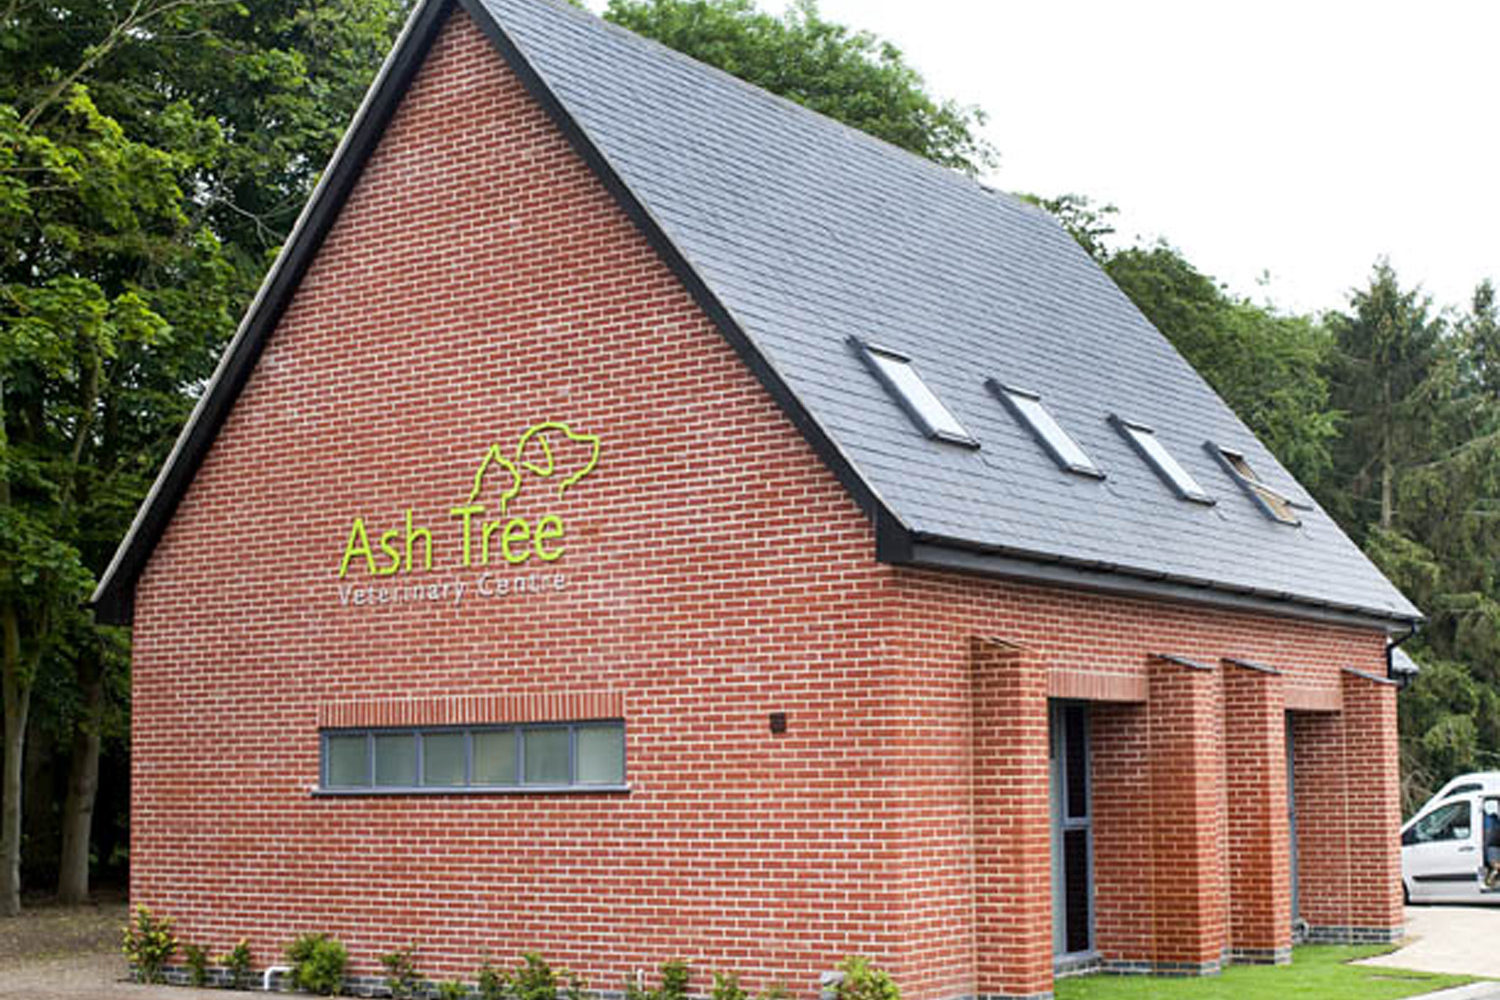 Ash Tree Veterinary Centre